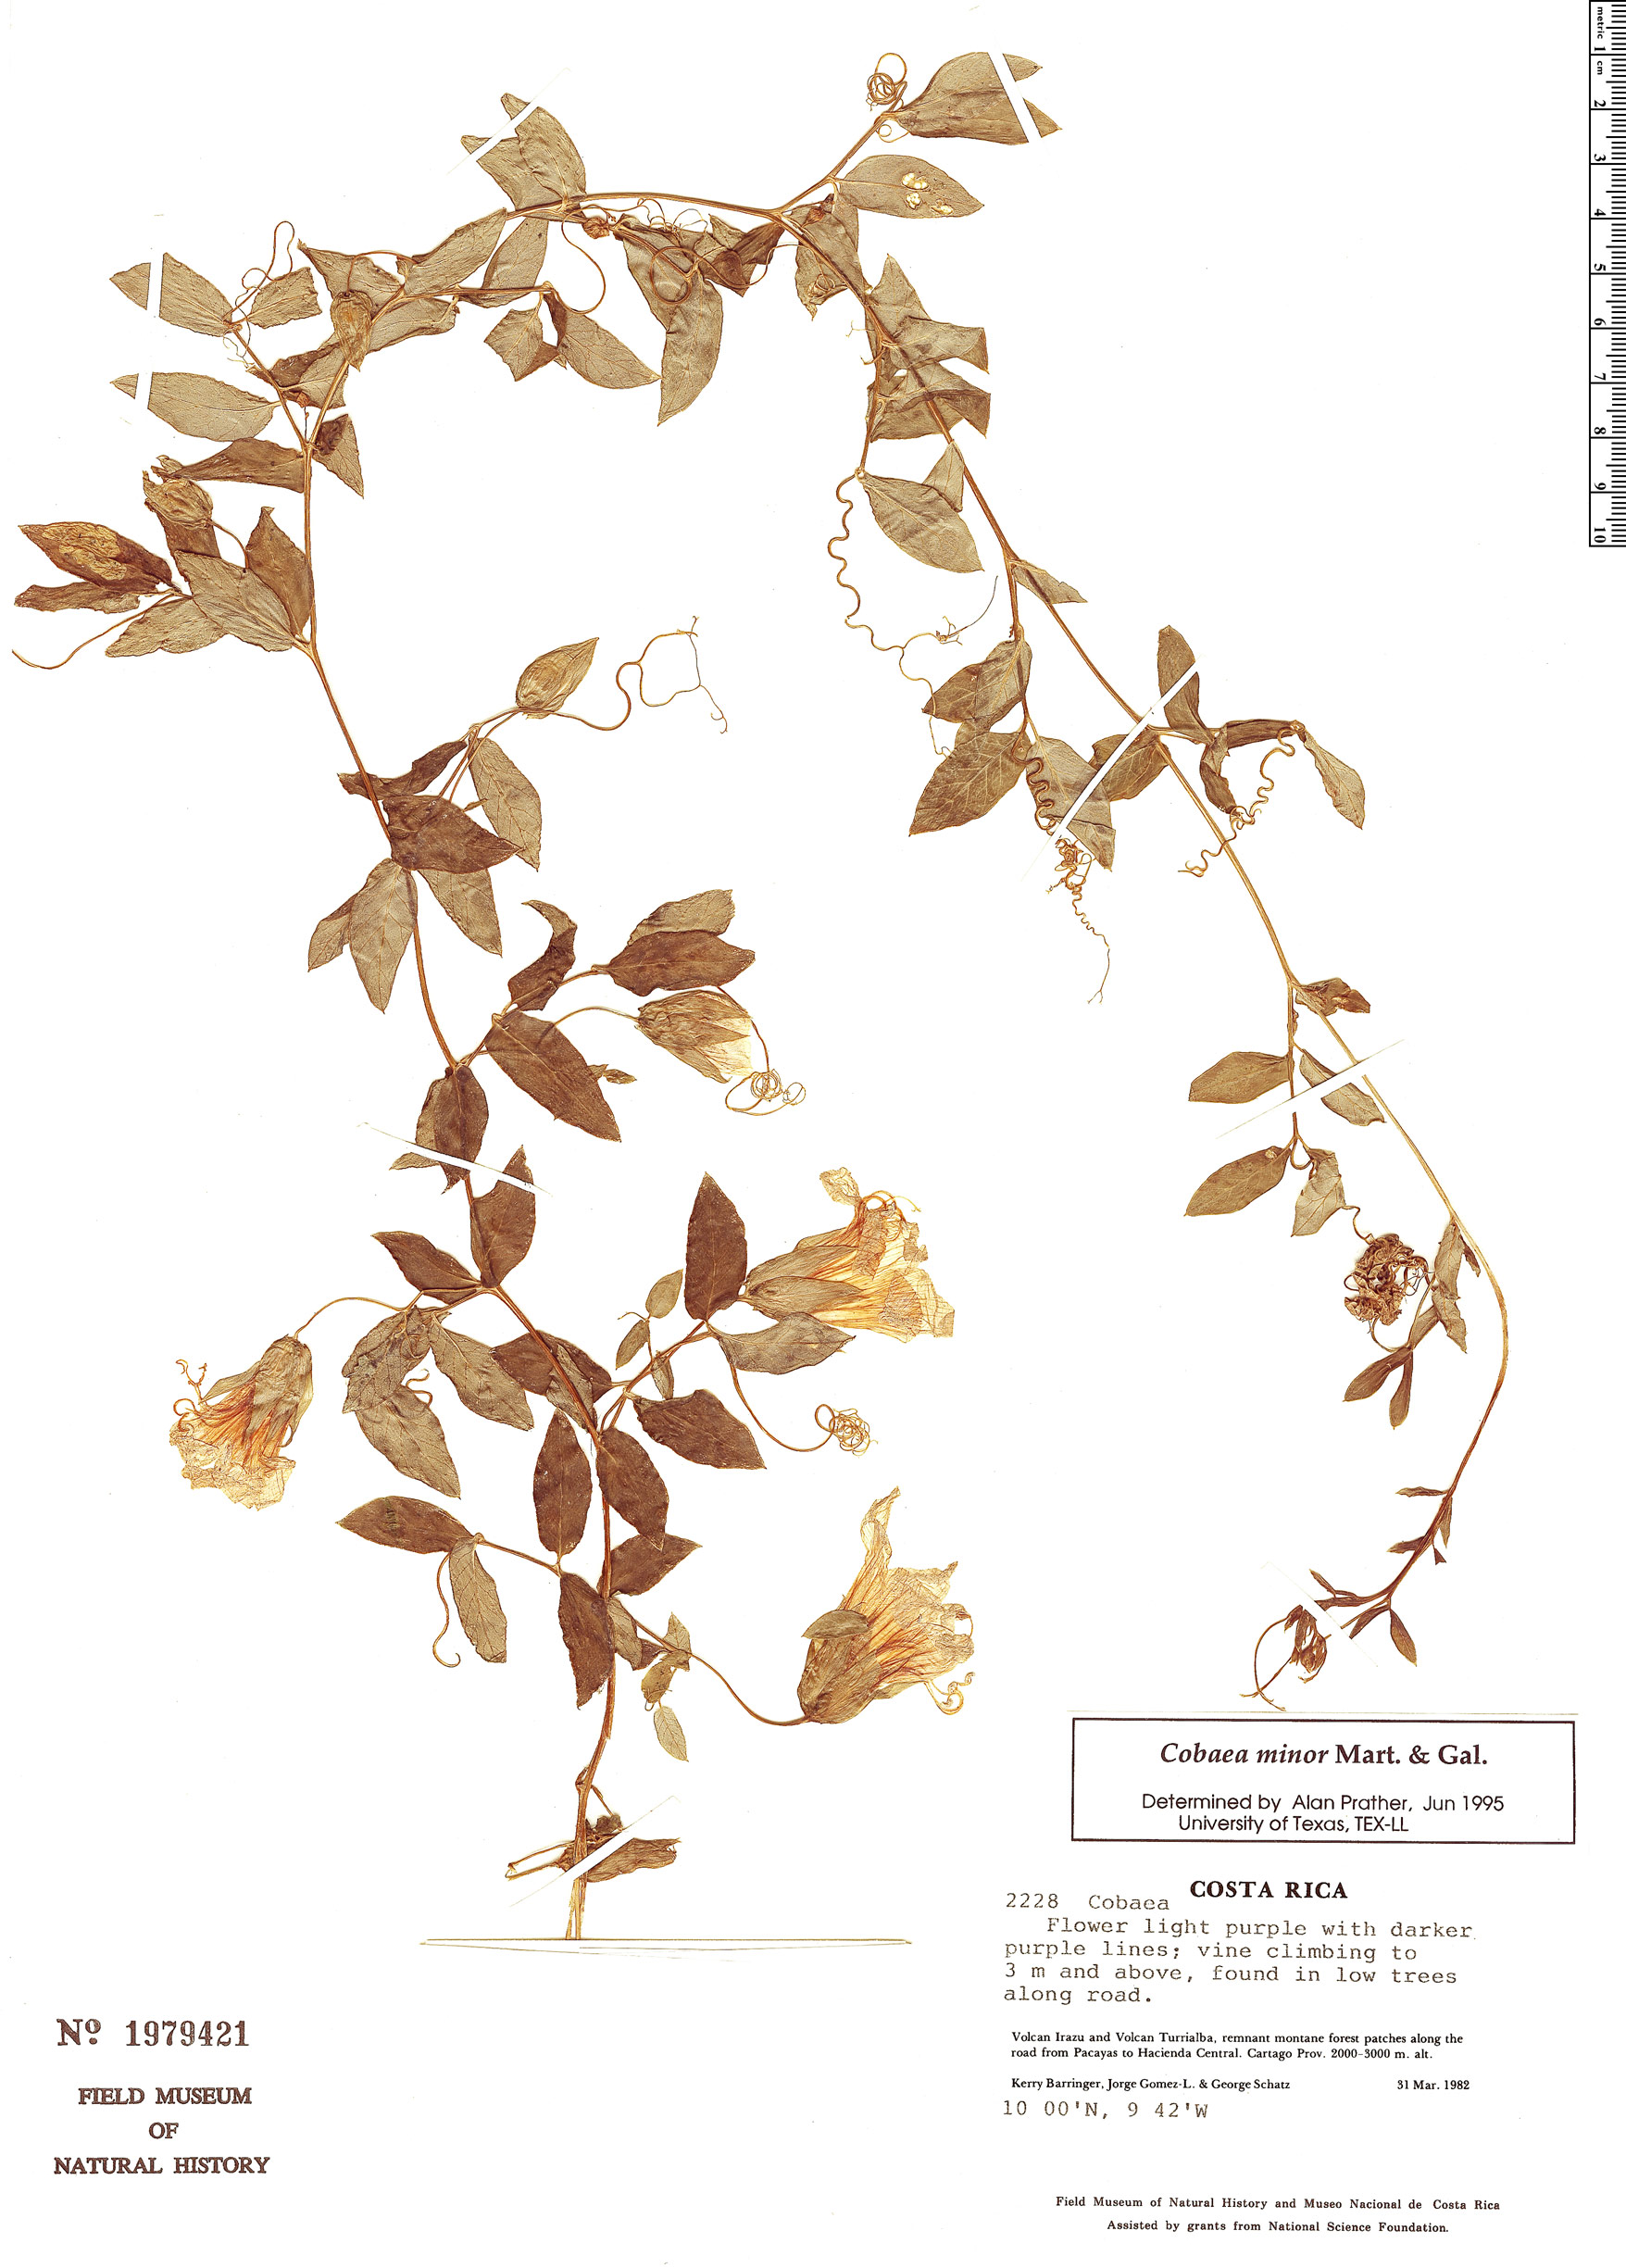 Specimen: Cobaea minor